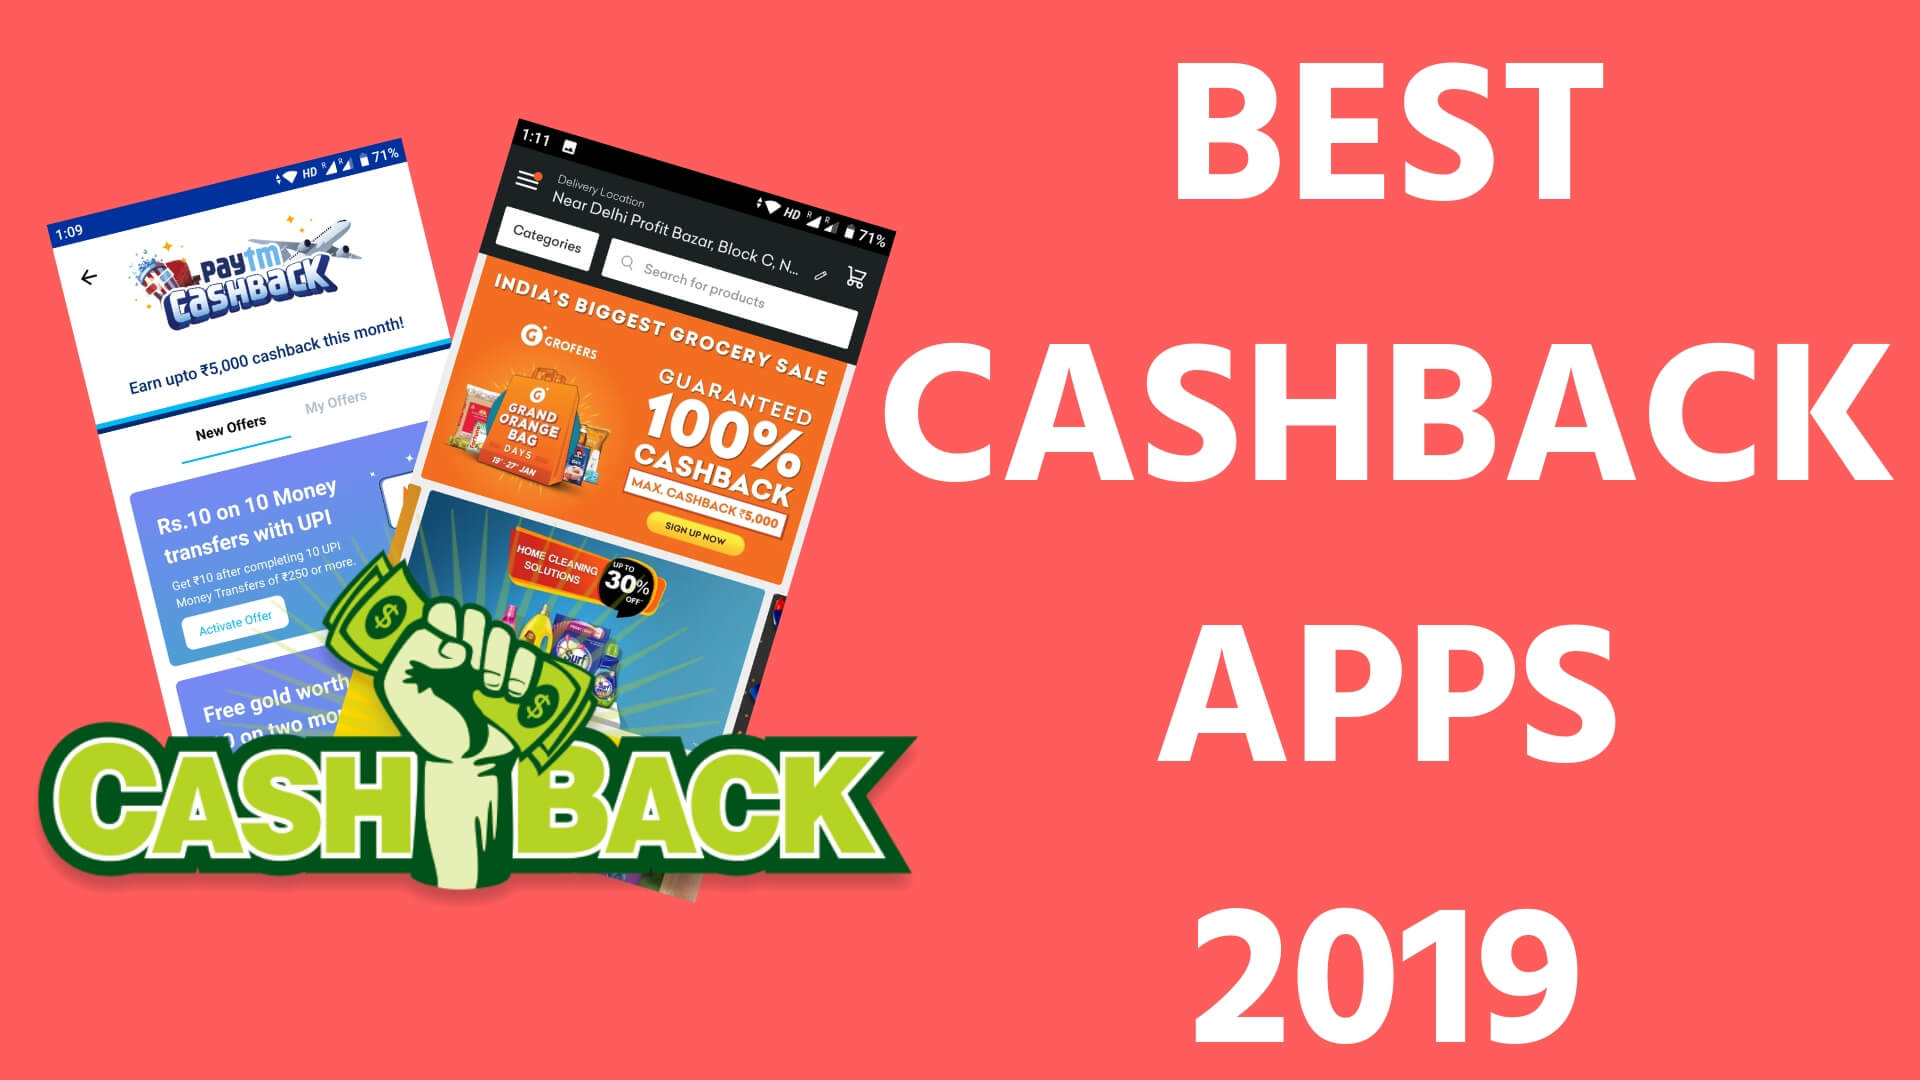 BEST CASHBACK APPS